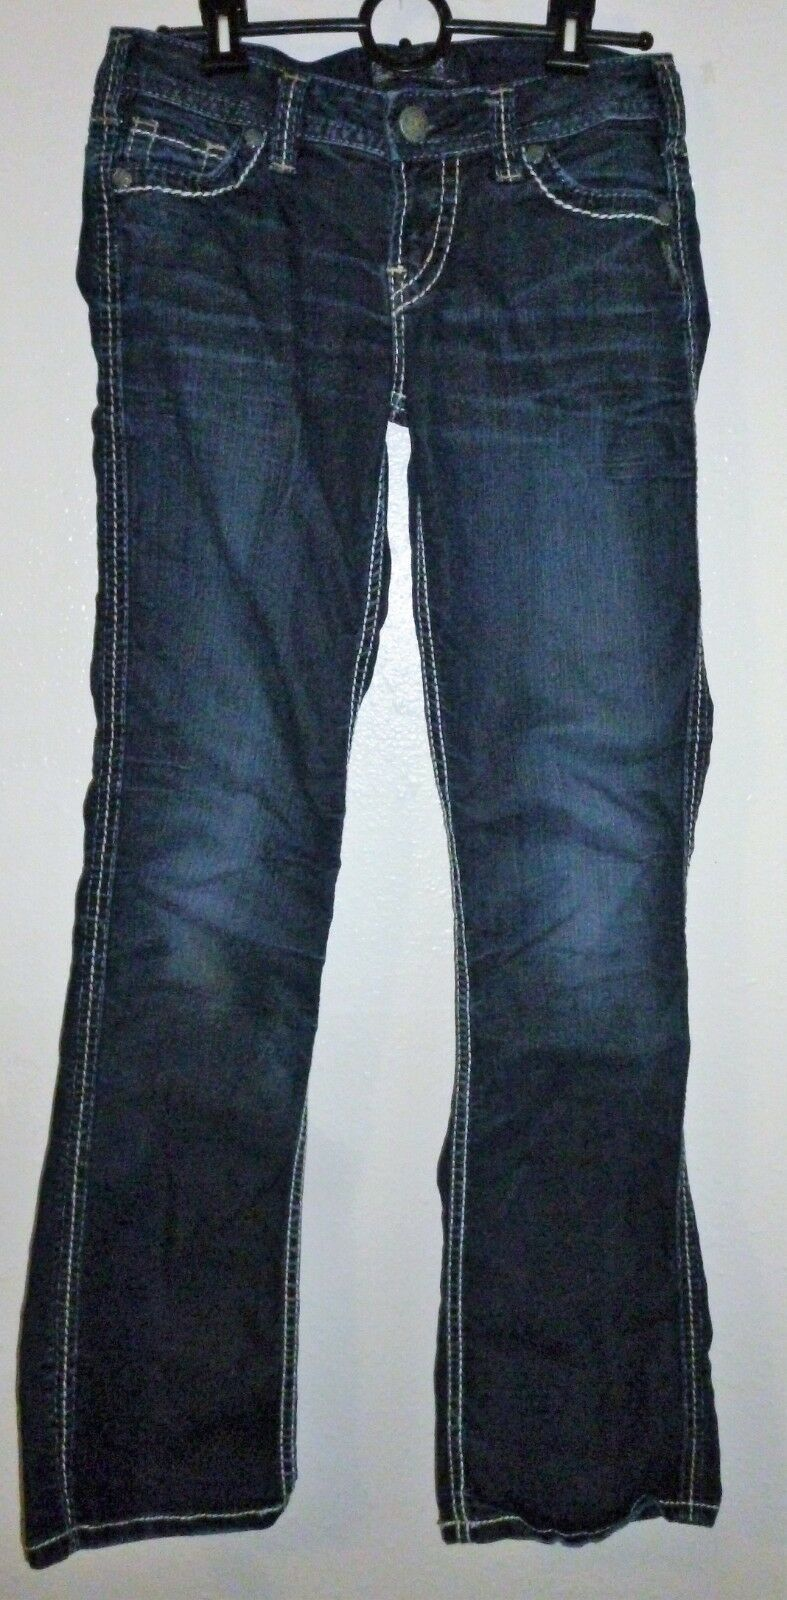 Primary image for New! SILVER Jeans Frances Girls Sz 18 Dark Wash Bootcut Thick Stitch W 26 L 31